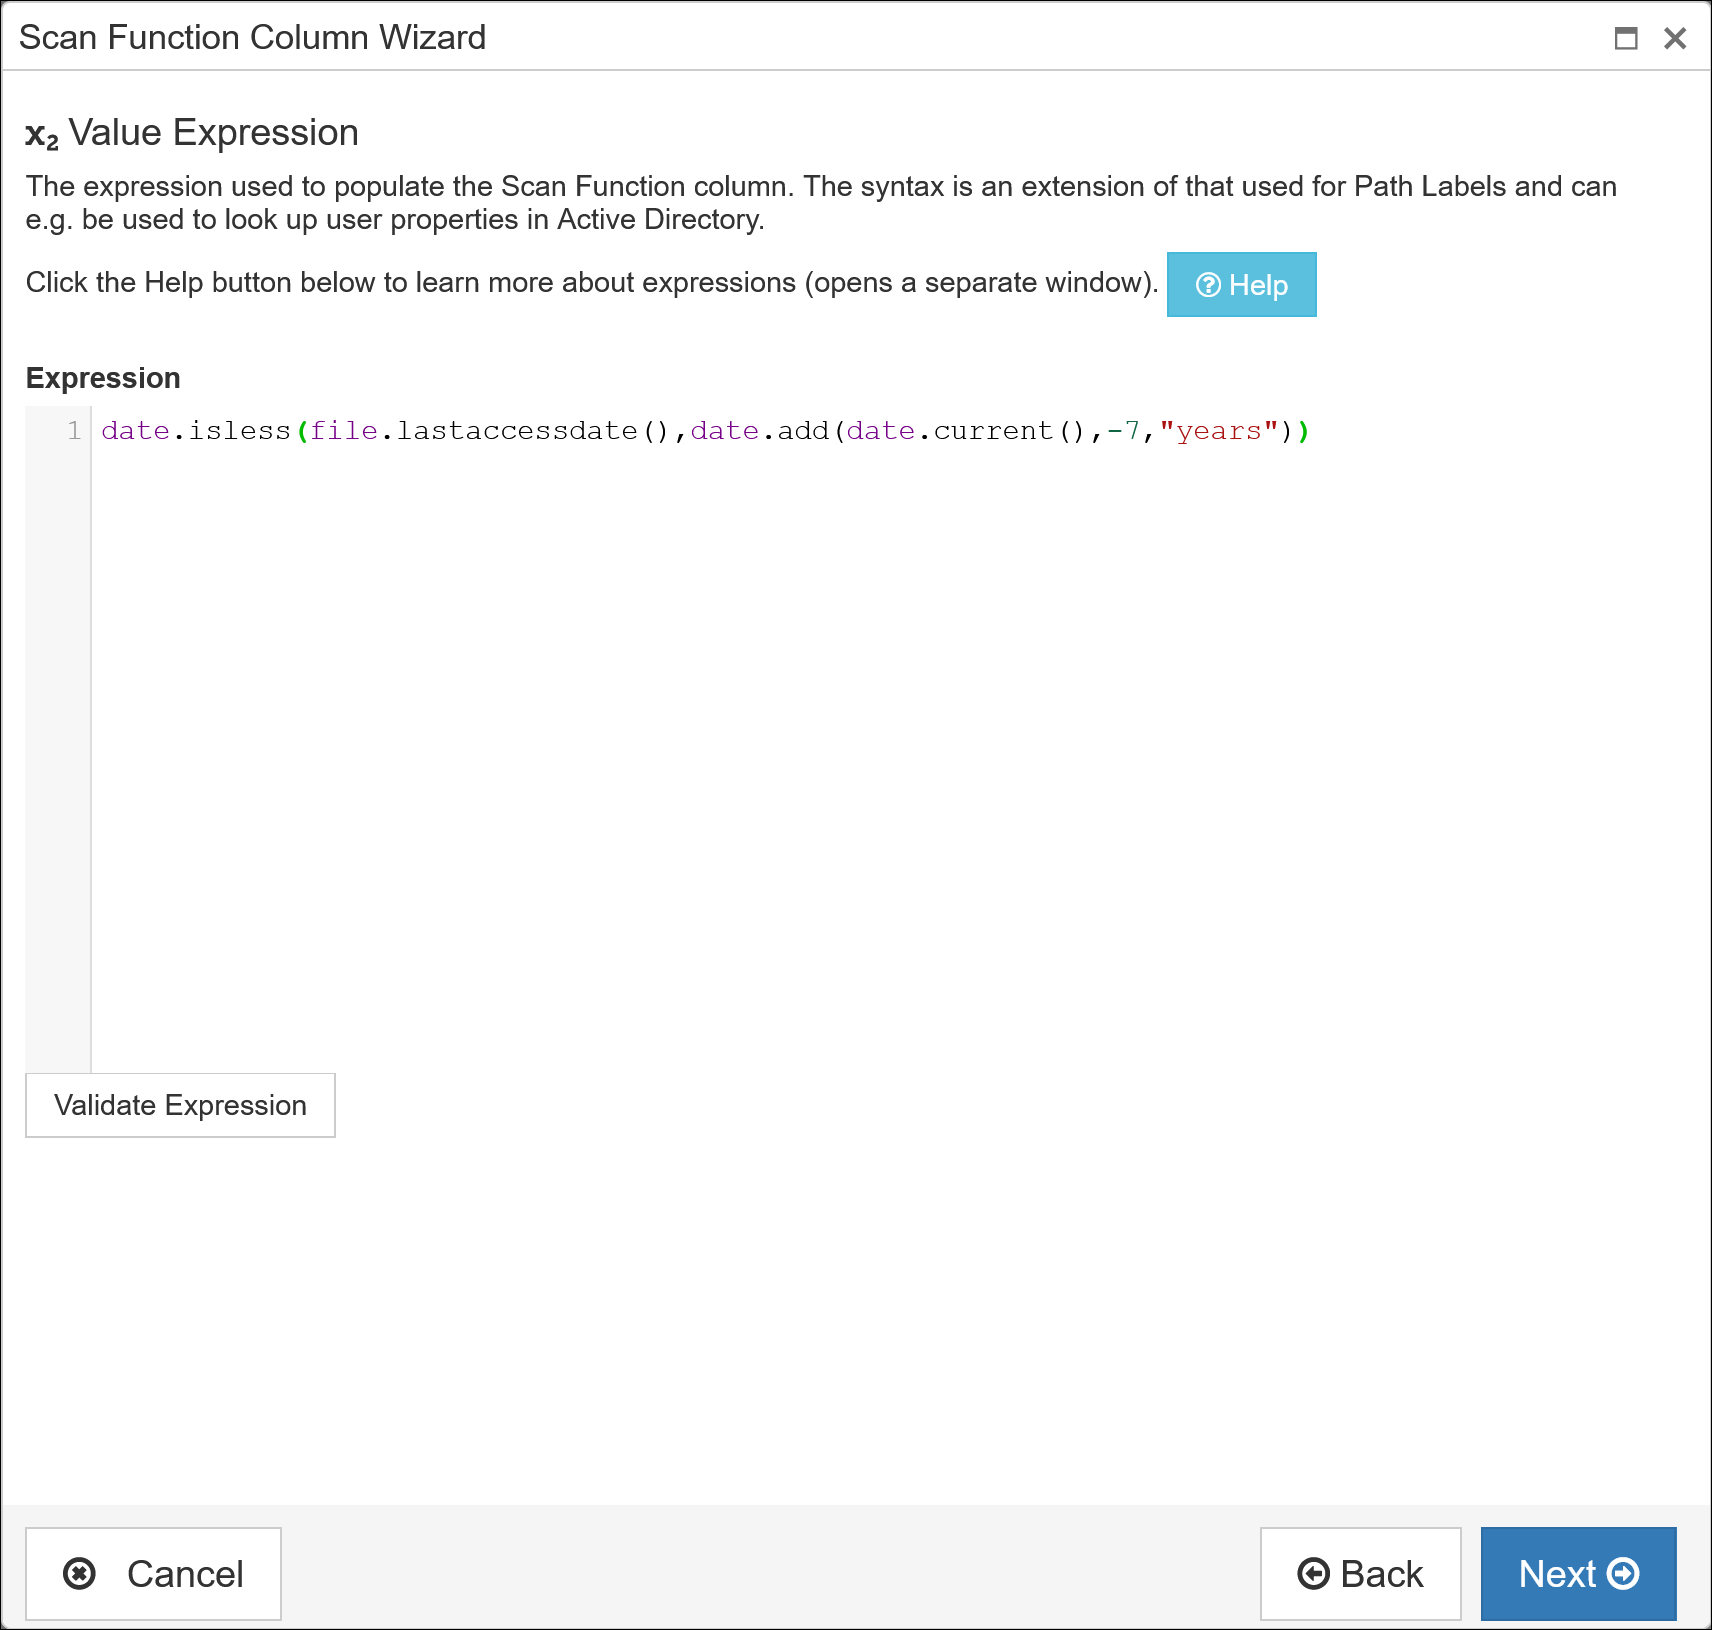 Function Columns - Add or edit wizard expression page